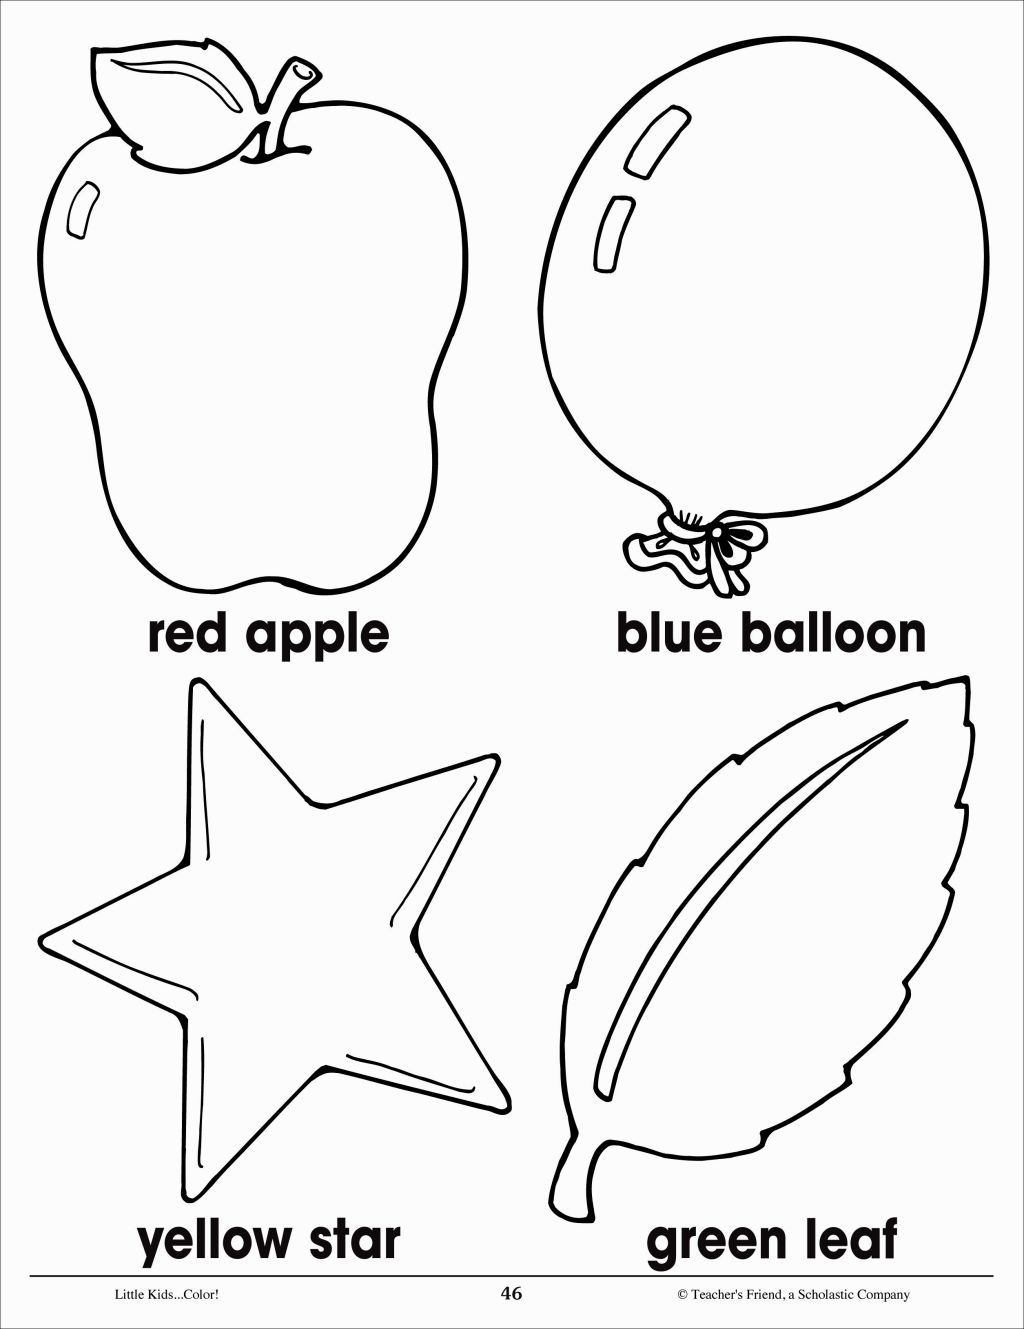 35 Coloring Pages For Nursery Class Abc Coloring Pages Preschool Coloring Pages Printable Coloring Book